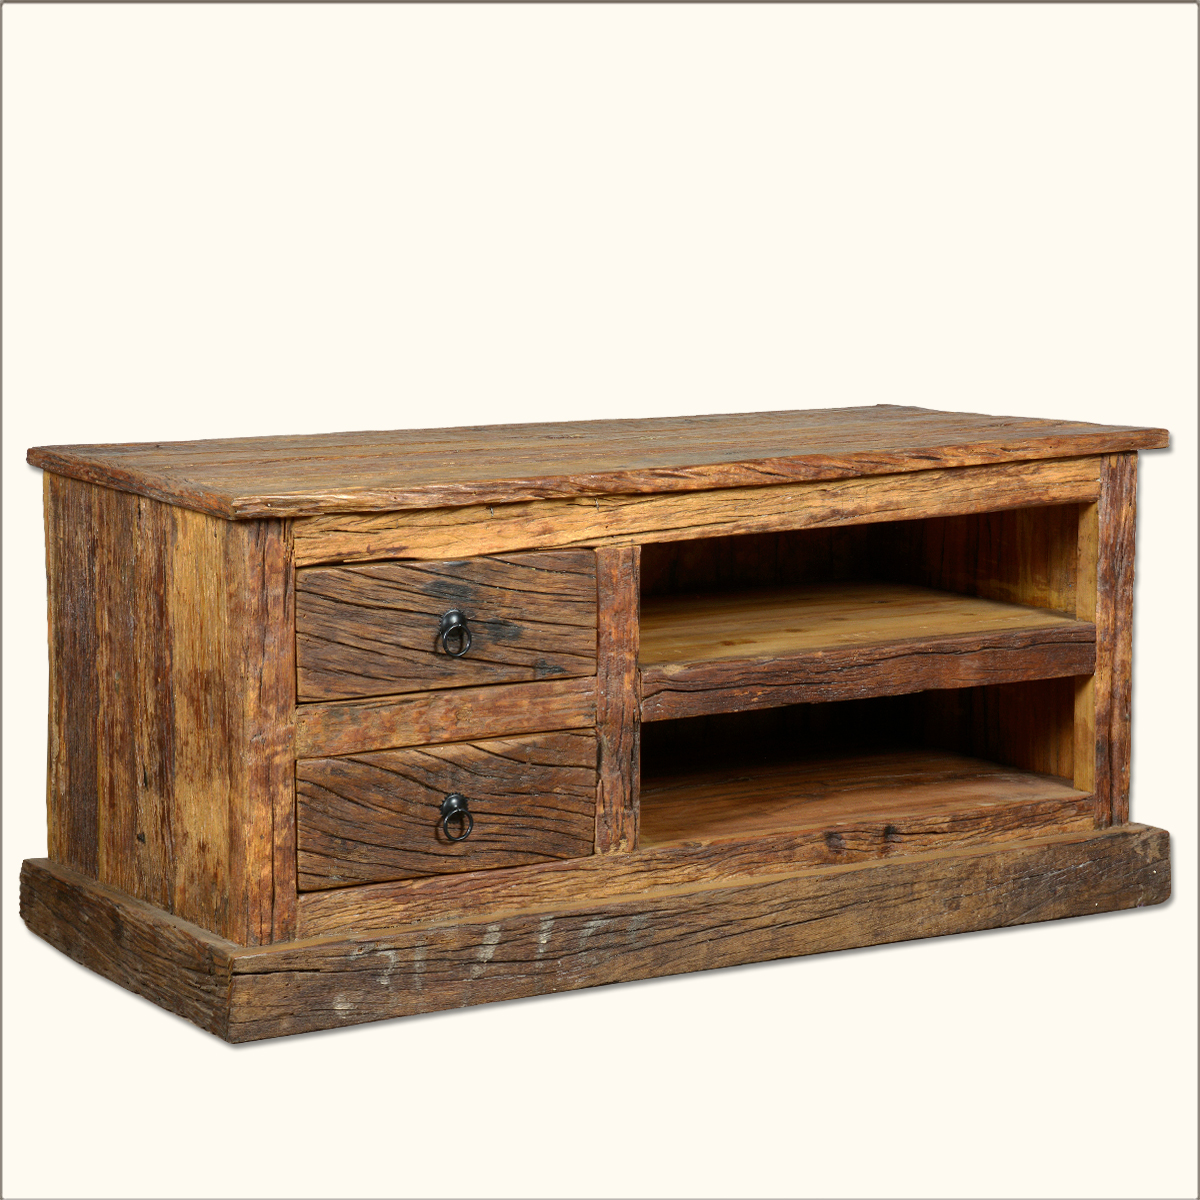 Reclaimed Wood Rustic Railroad Ties TV Stand Media Console ...